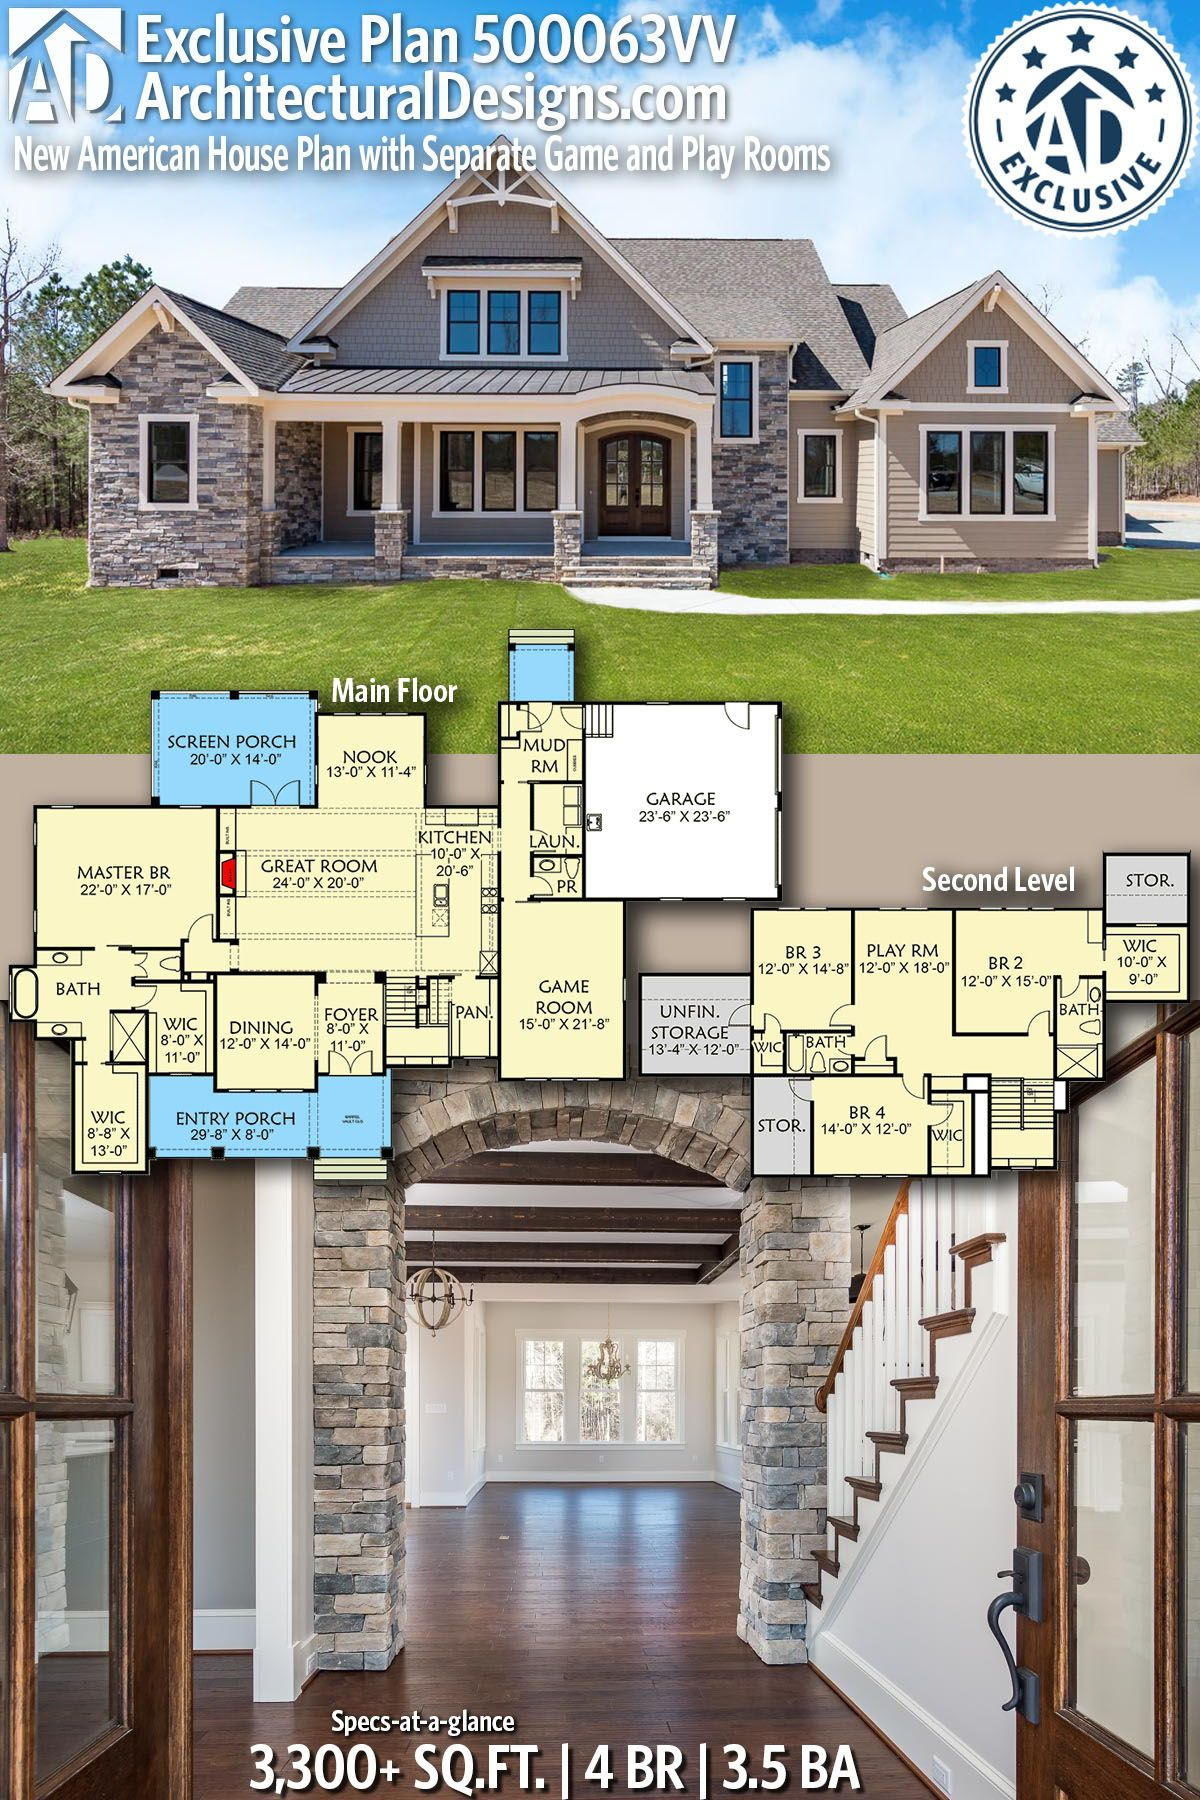 Plan 500063vv New American House Plan With Separate Game And Play